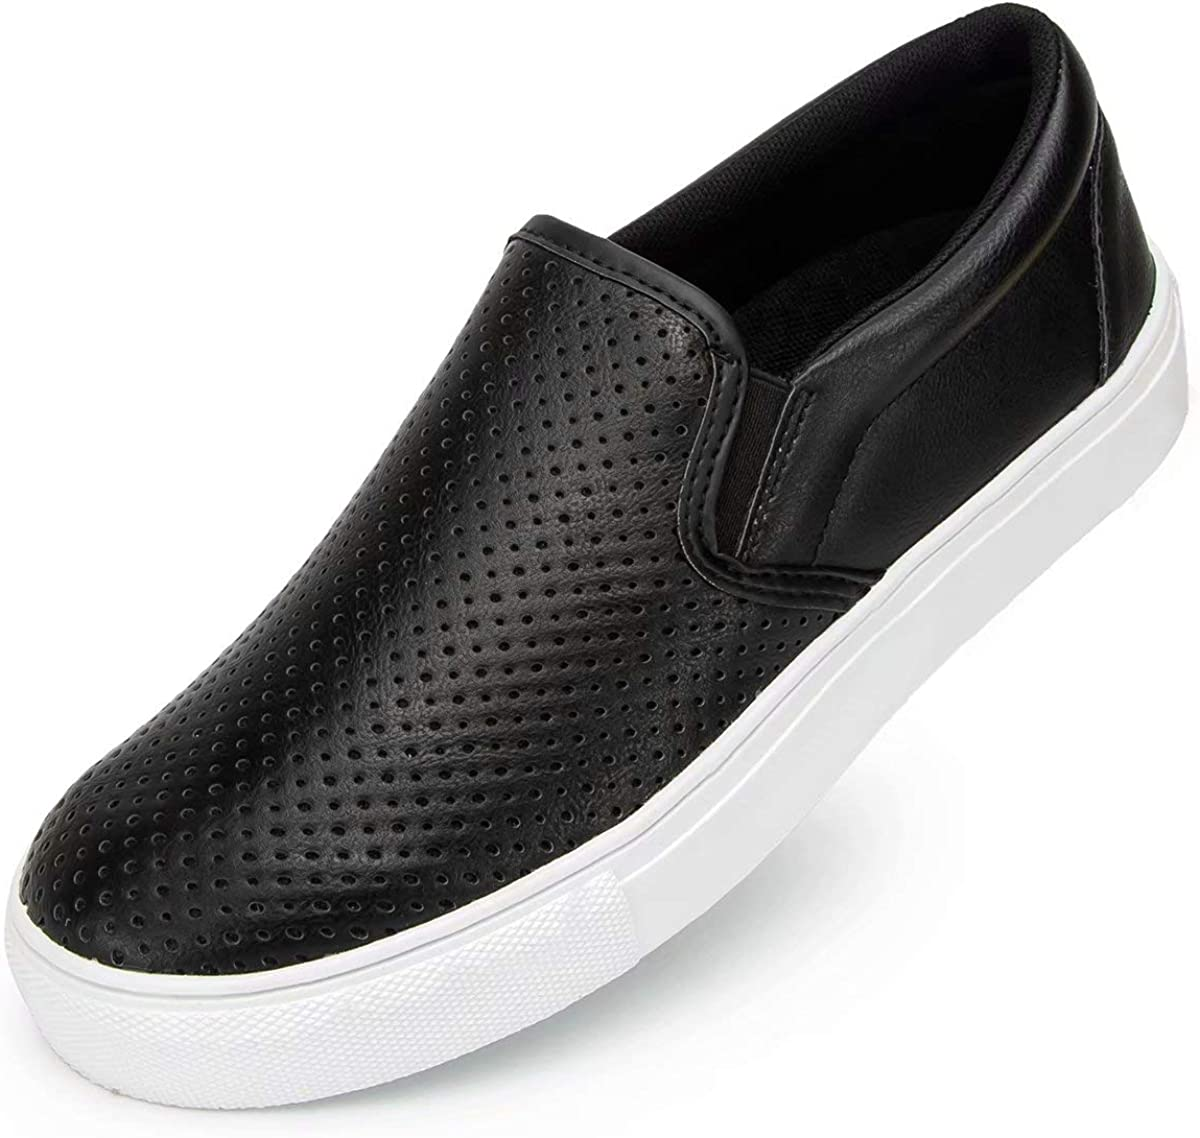 Lxso Womens Slip On Sneakers Loafer Shoes,Casual Memory Foam Perforated Slide On Shoes